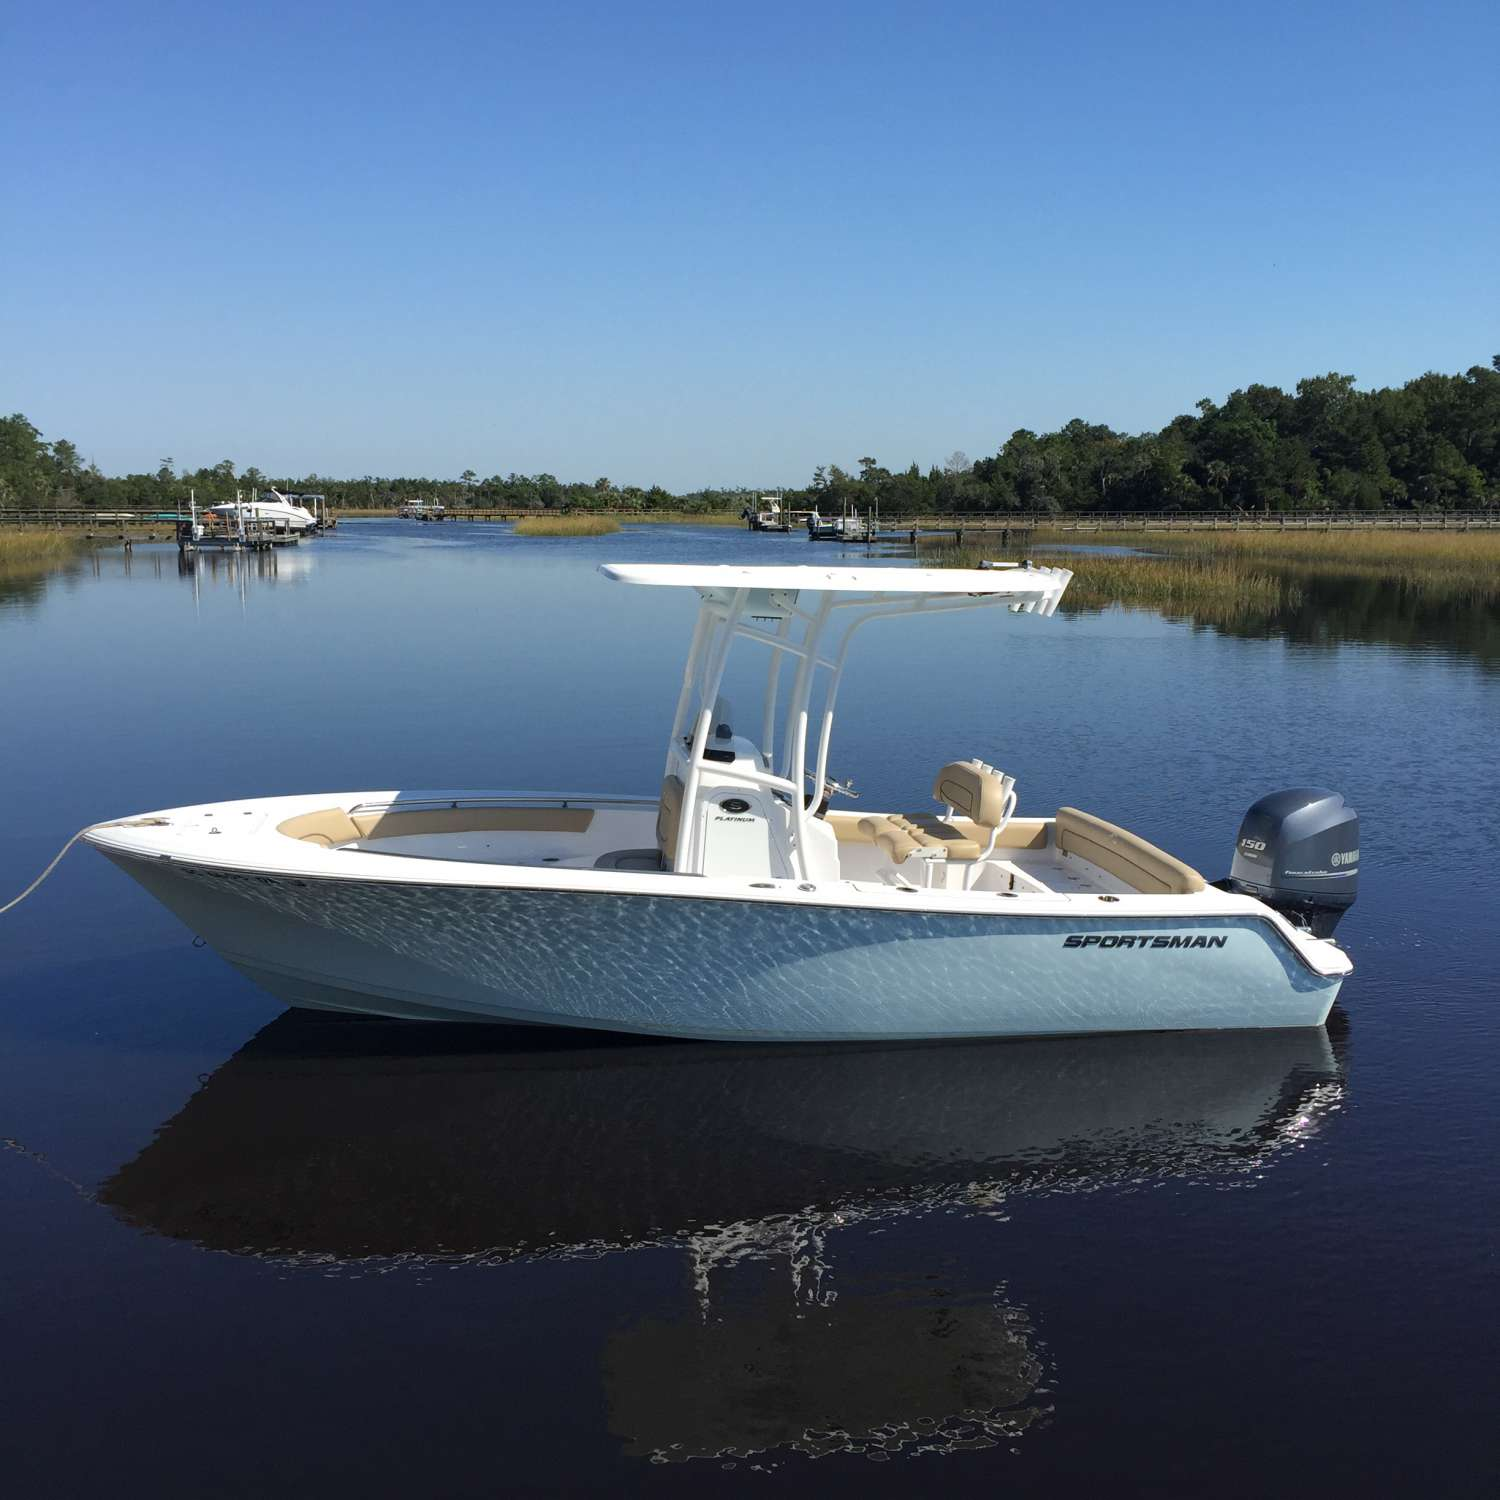 Title: Wagner Creek - On board their Sportsman Heritage 211 Center Console - Location: Mt Pleasant, South Carolina. Participating in the Photo Contest #SportsmanNovember2015